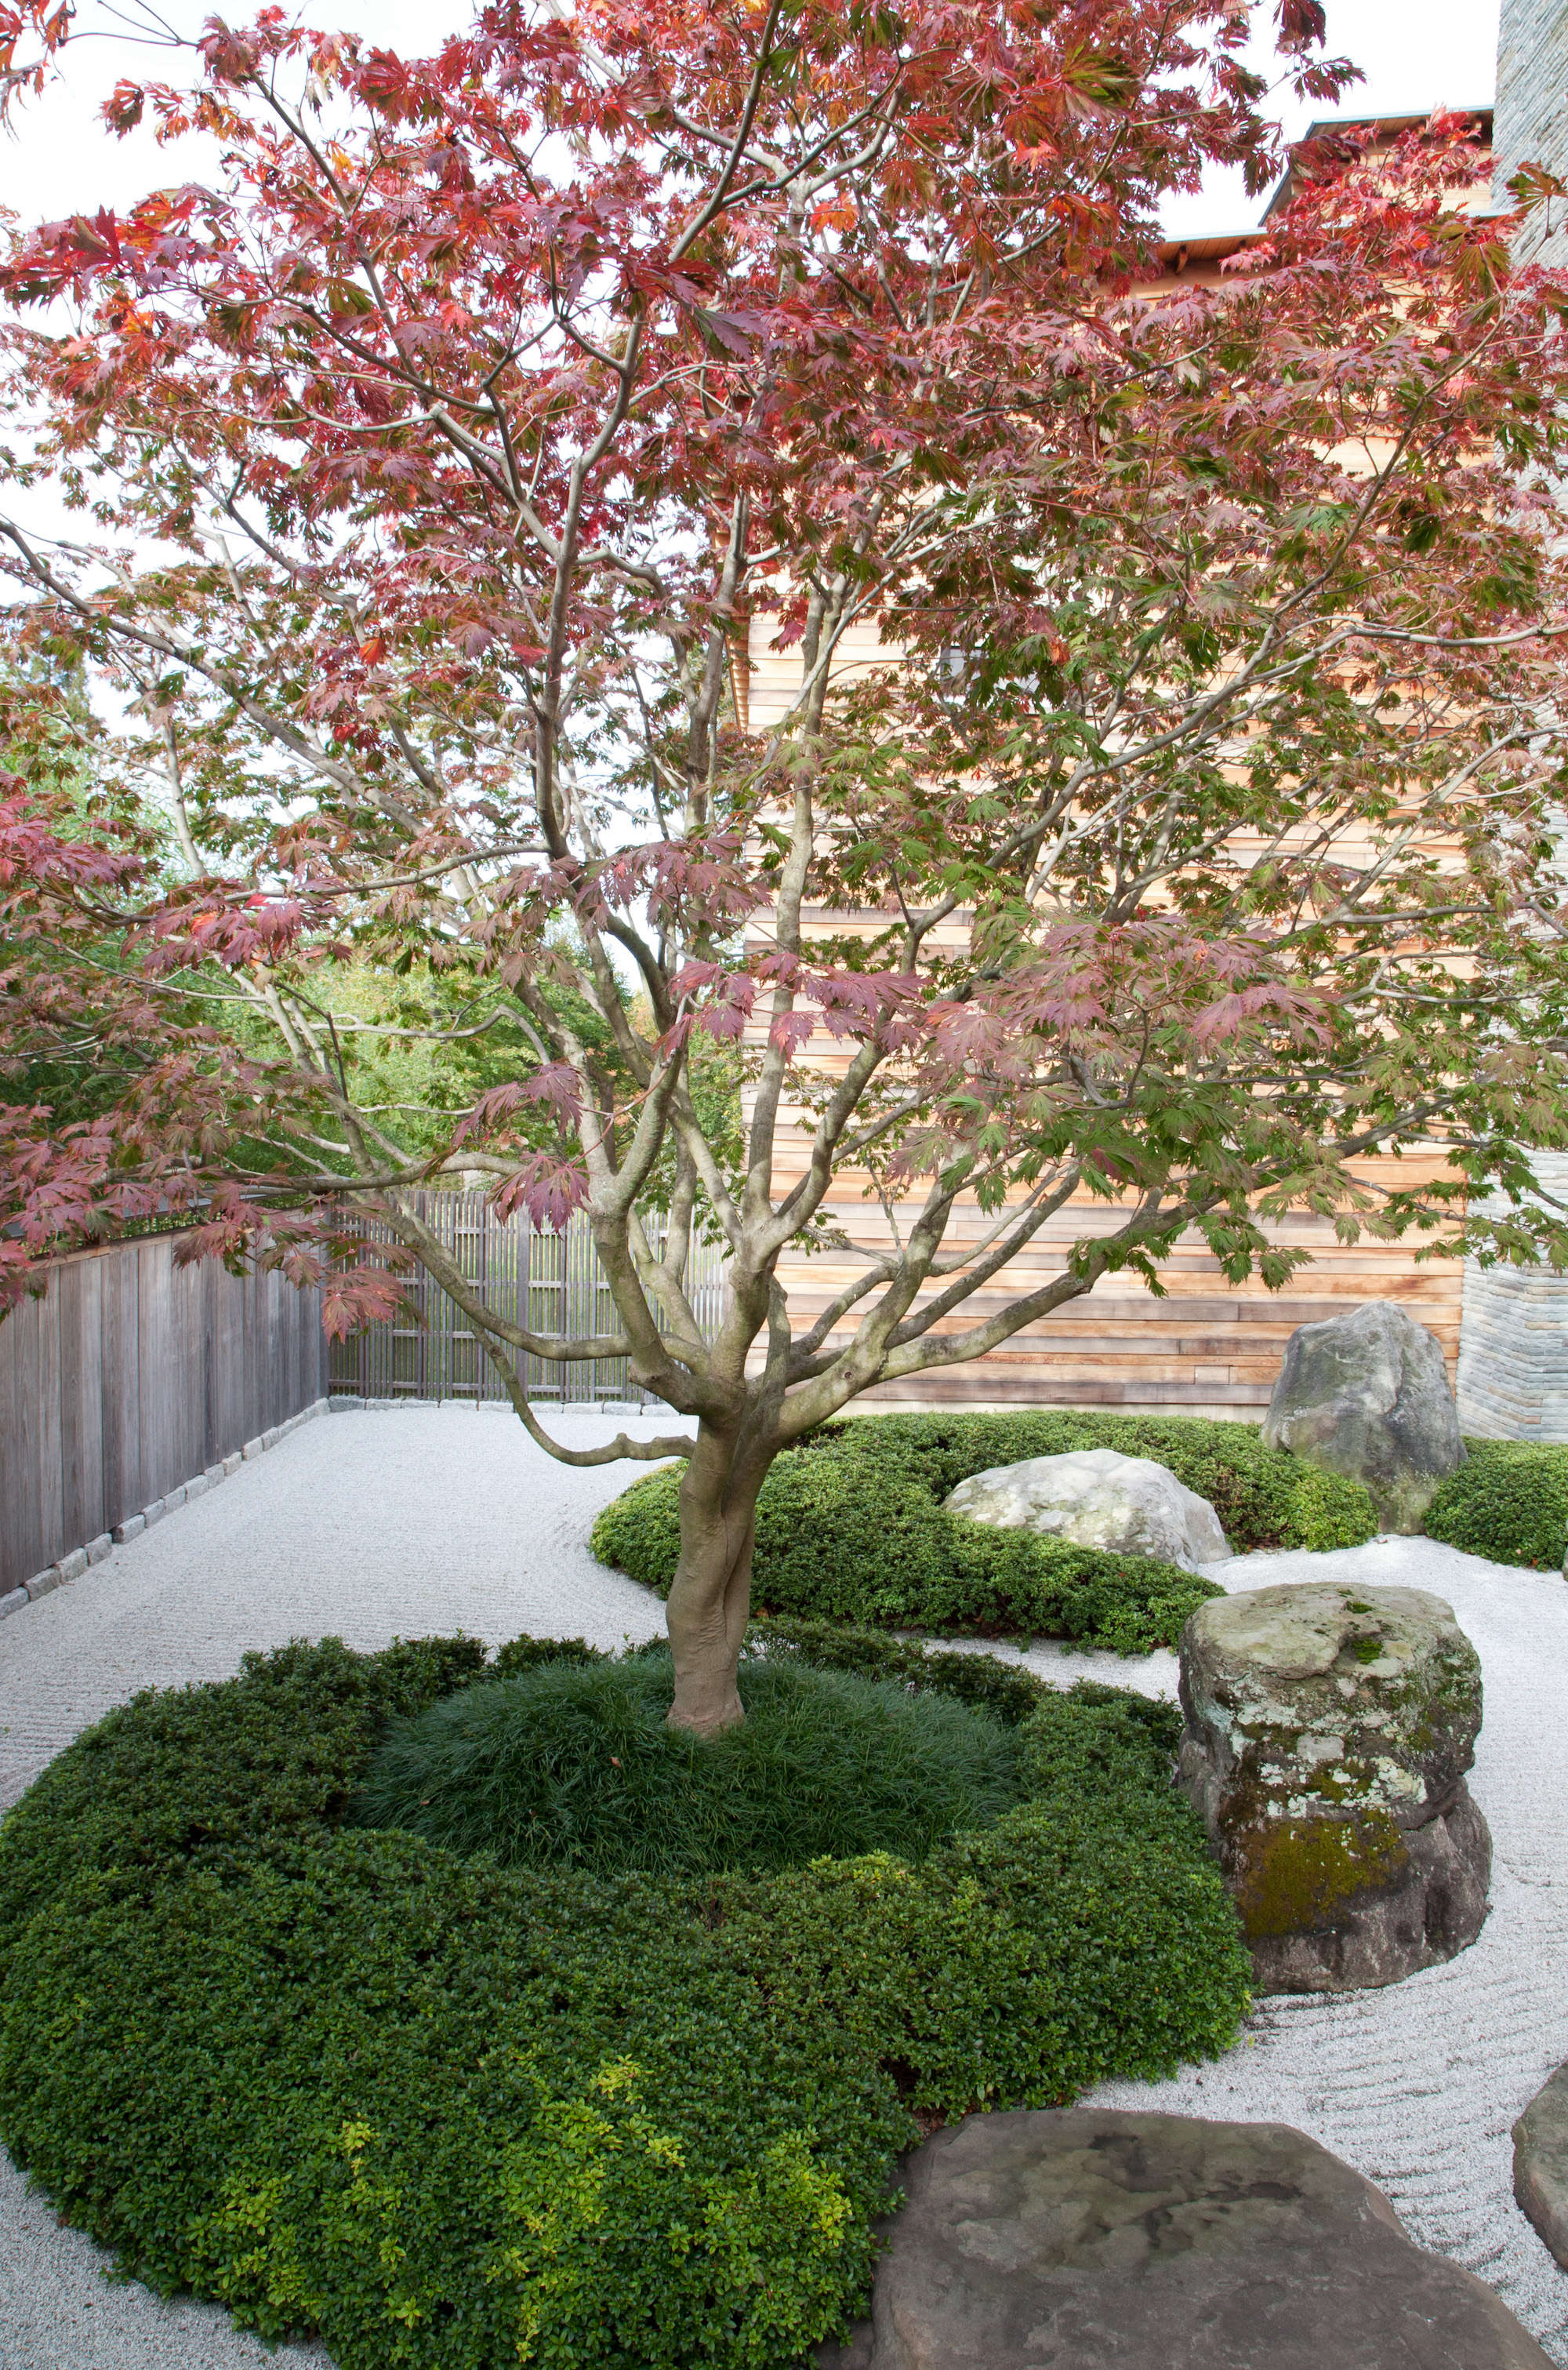 An island of mondo grass and small-leafed azalea surrounds a Japanese maple tree.